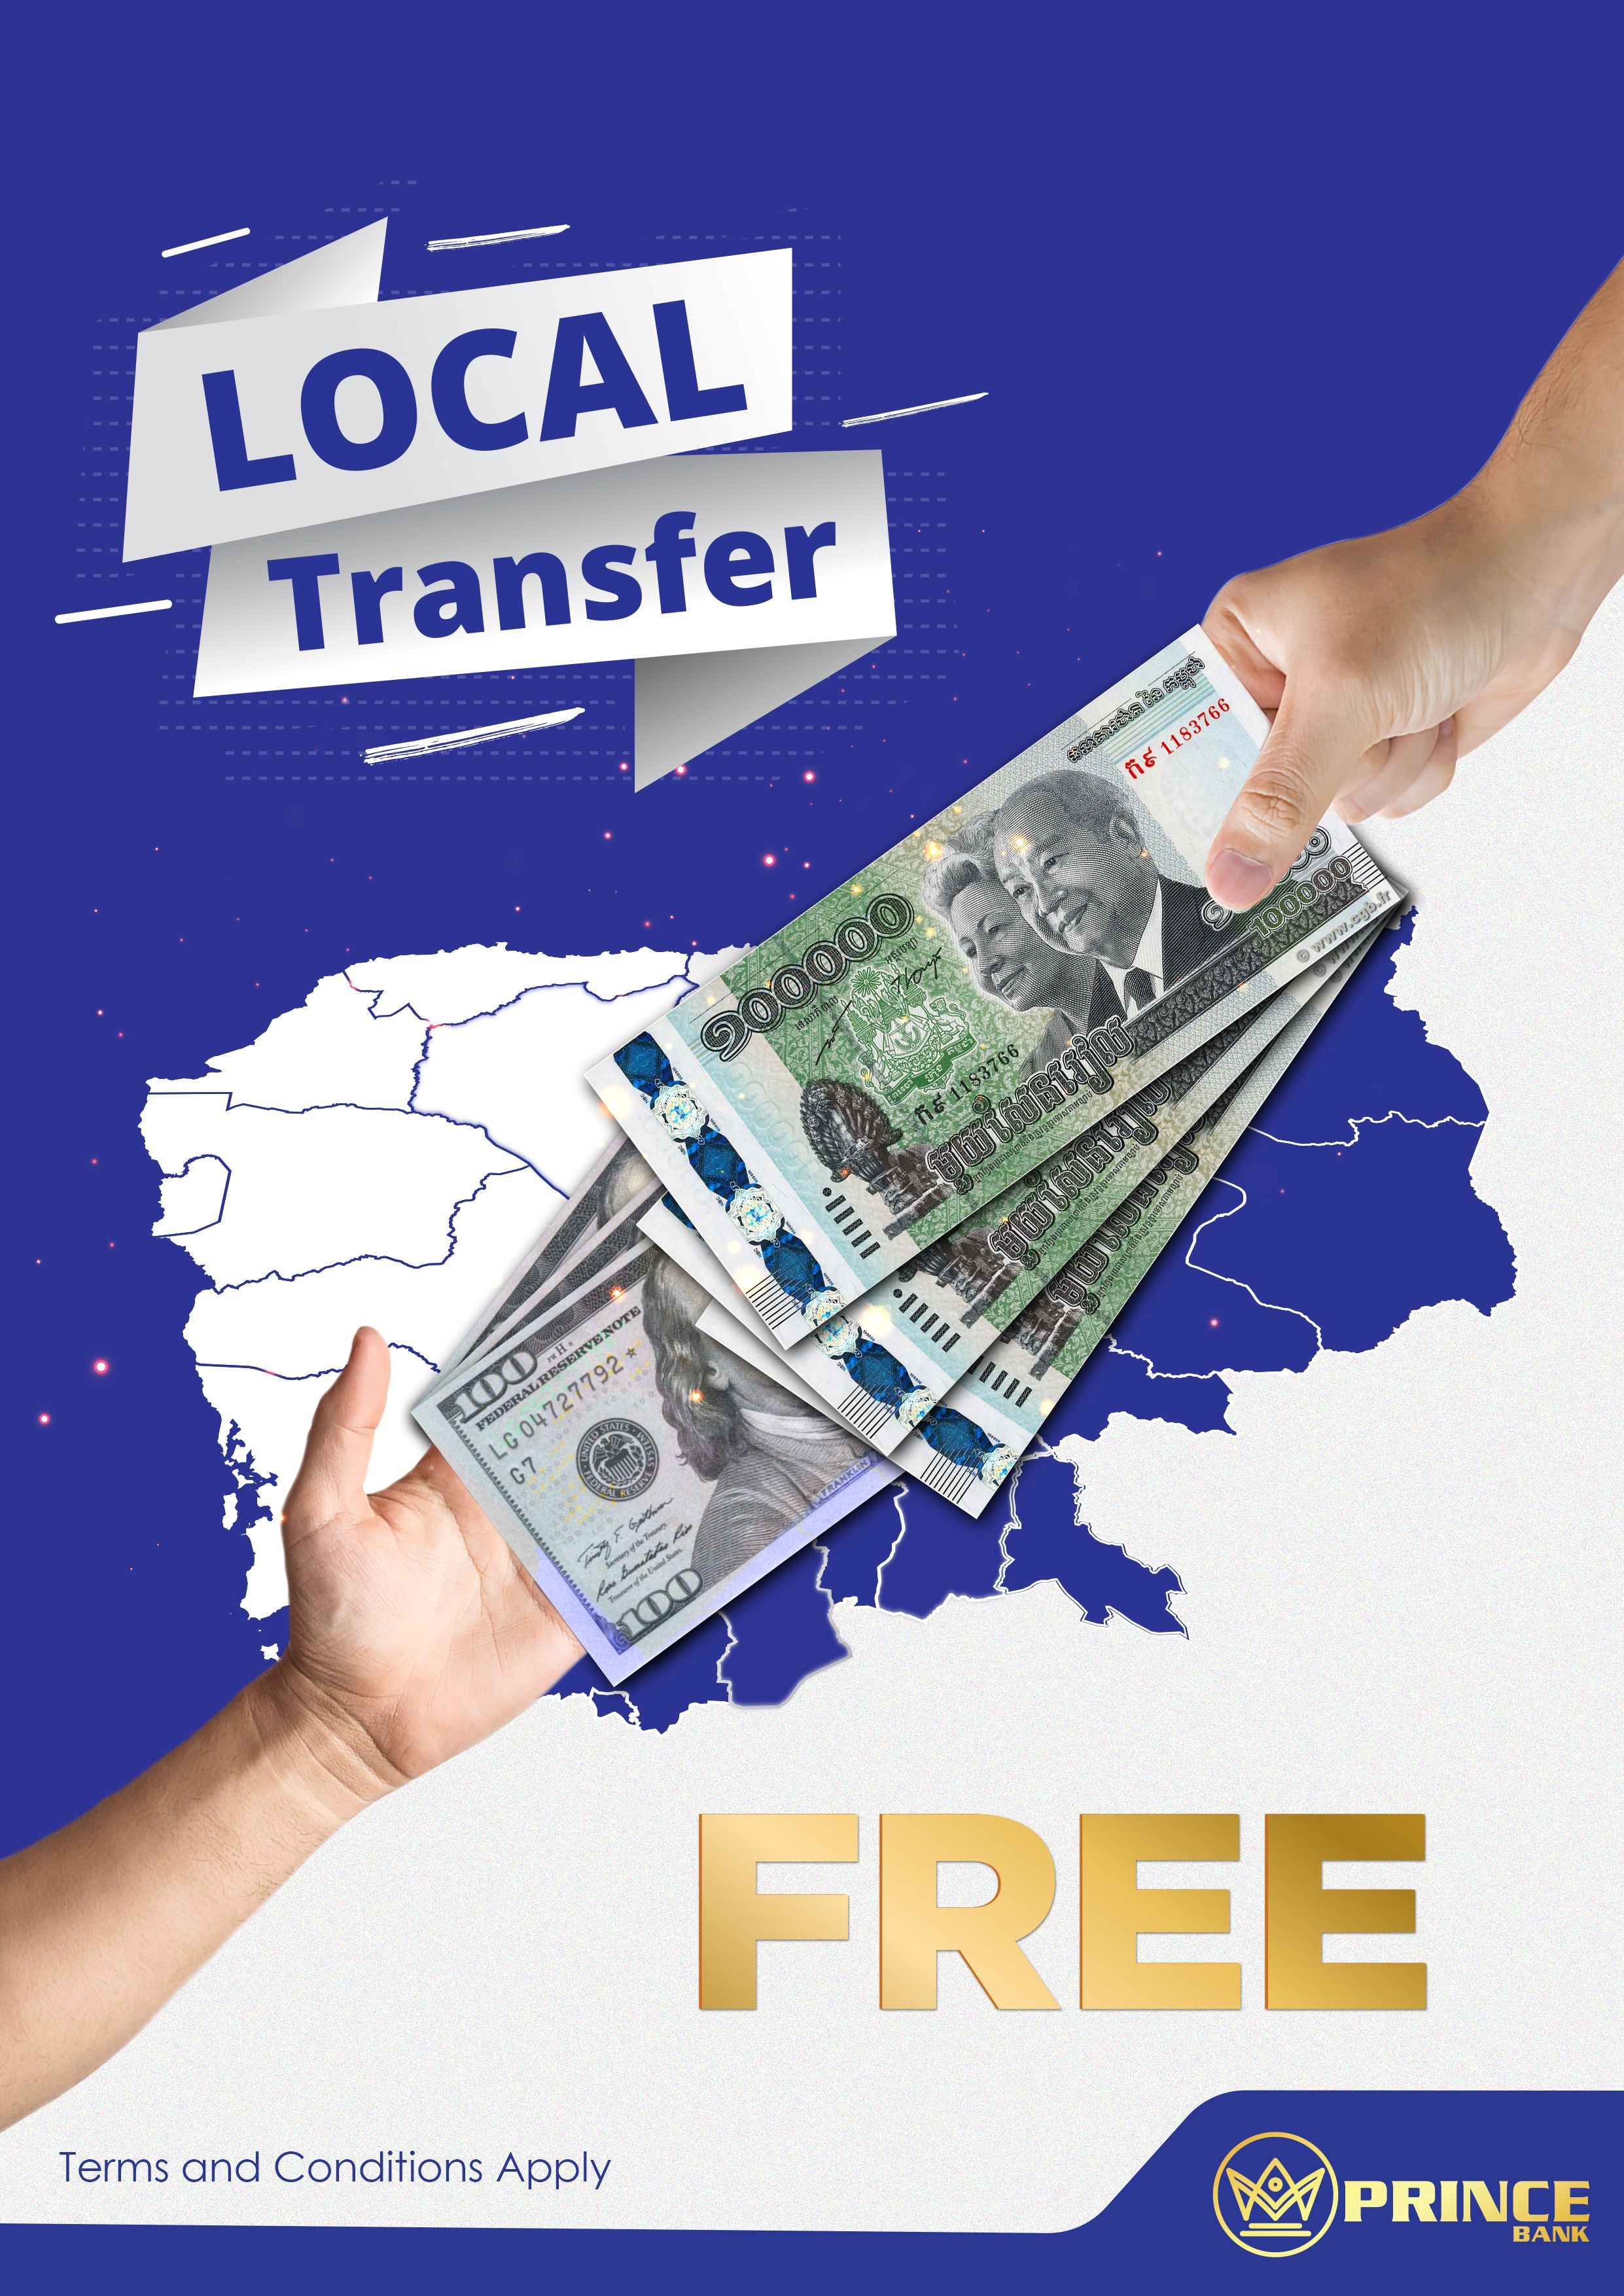 Free Local Transfer